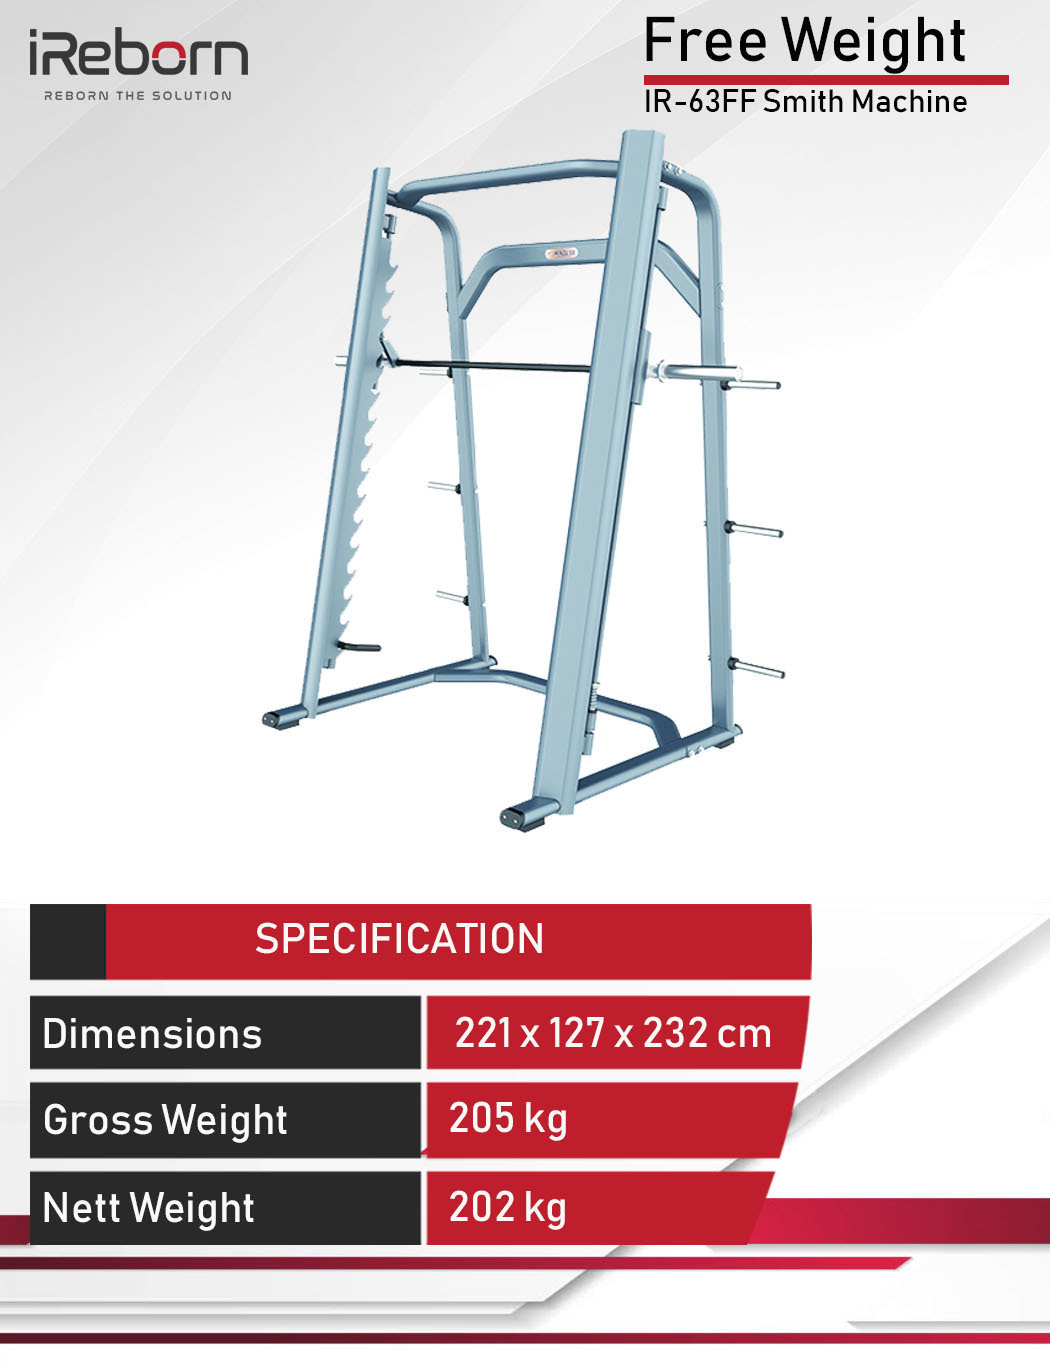 IR-63FF Smith Machine 10